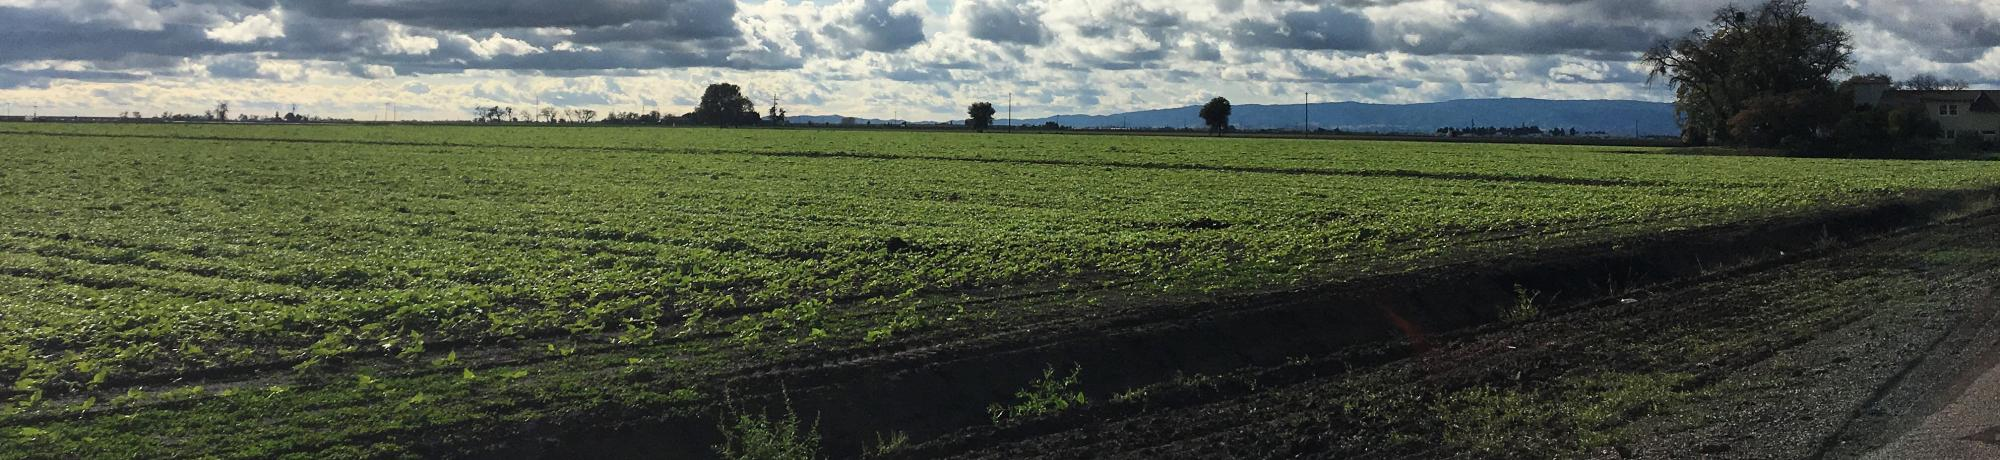 Agricultural fields in Davis, CA